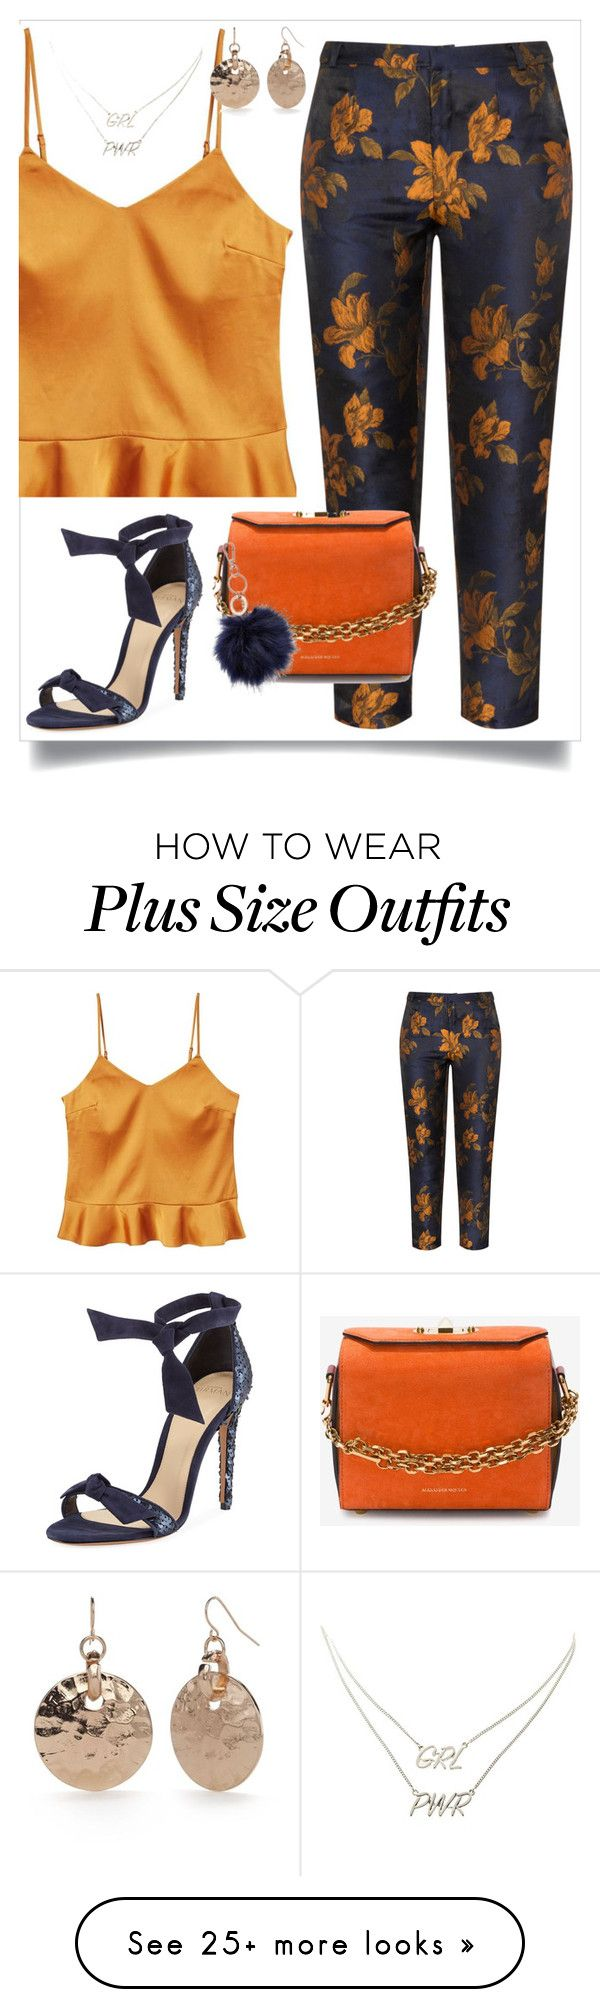 """Simple dark florals"" by stylewithasideof on Polyvore featuring MANGO, Manon Baptiste, Charlotte Russe, Alexander McQueen, Witchery, Alexandre Birman and New Directions"